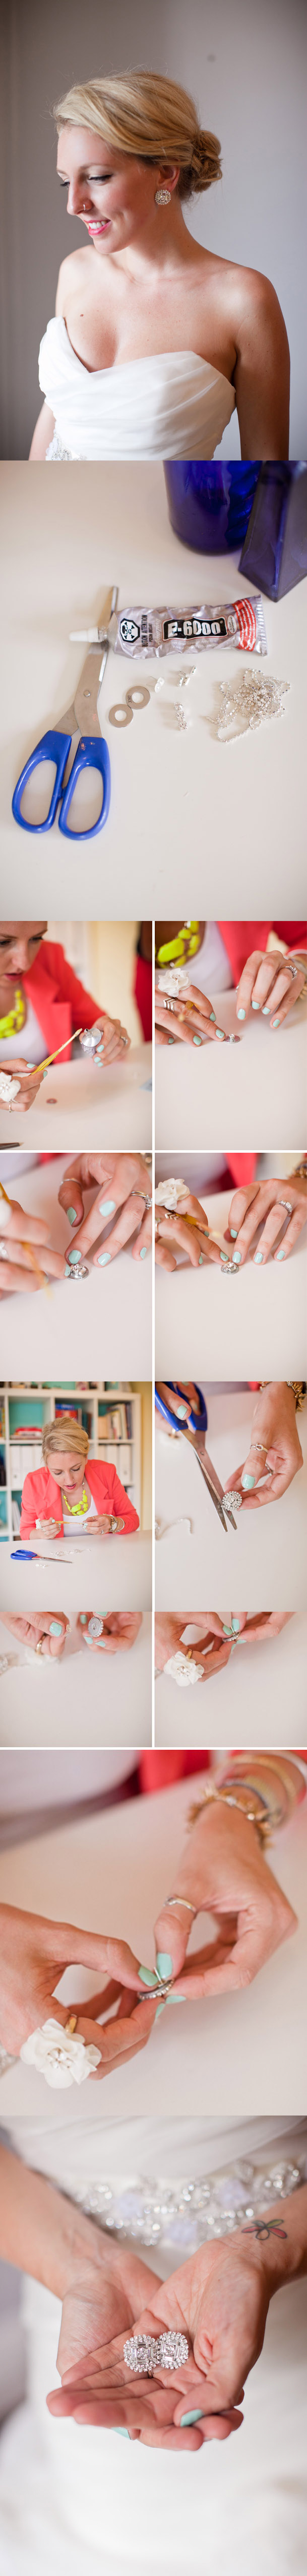 12 Fashionable DIY Ideas